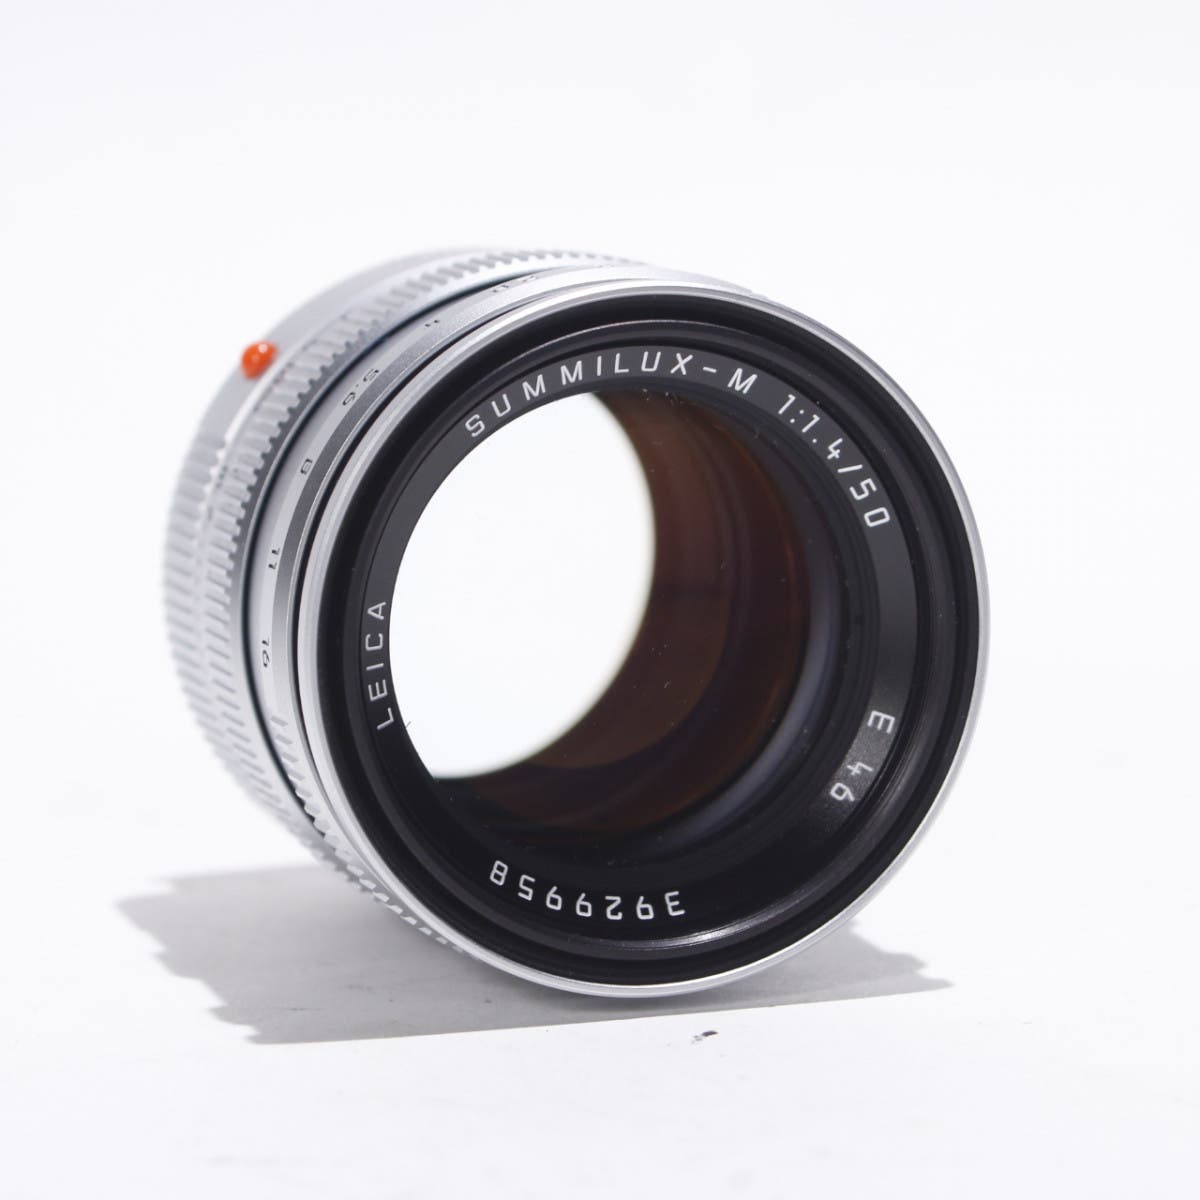 There's Something Very Special About This Leica 50mm F1.4 Lens